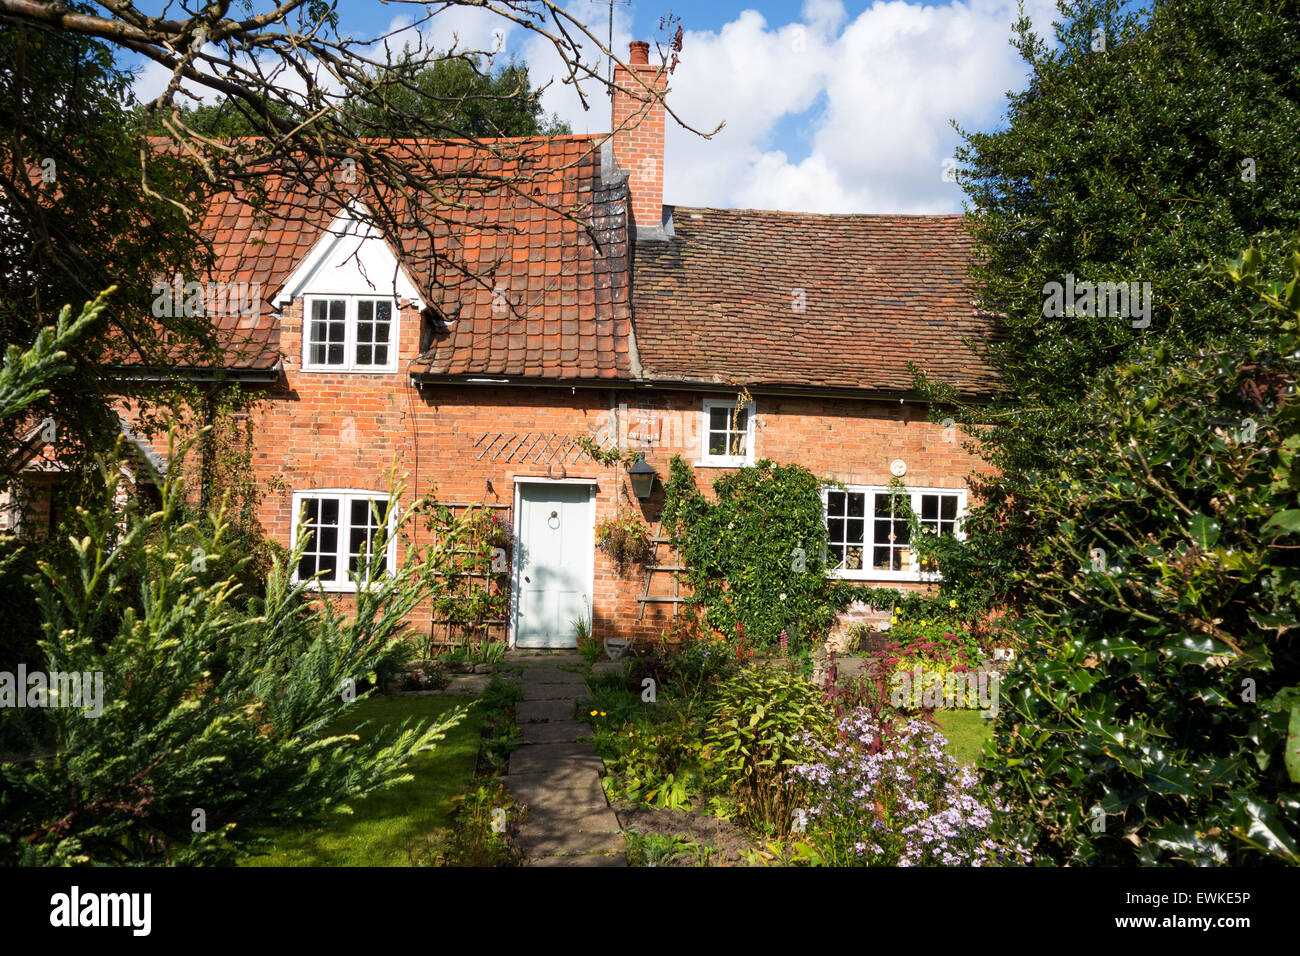 A quaint country cottage in a village England, U.K. - Stock Image